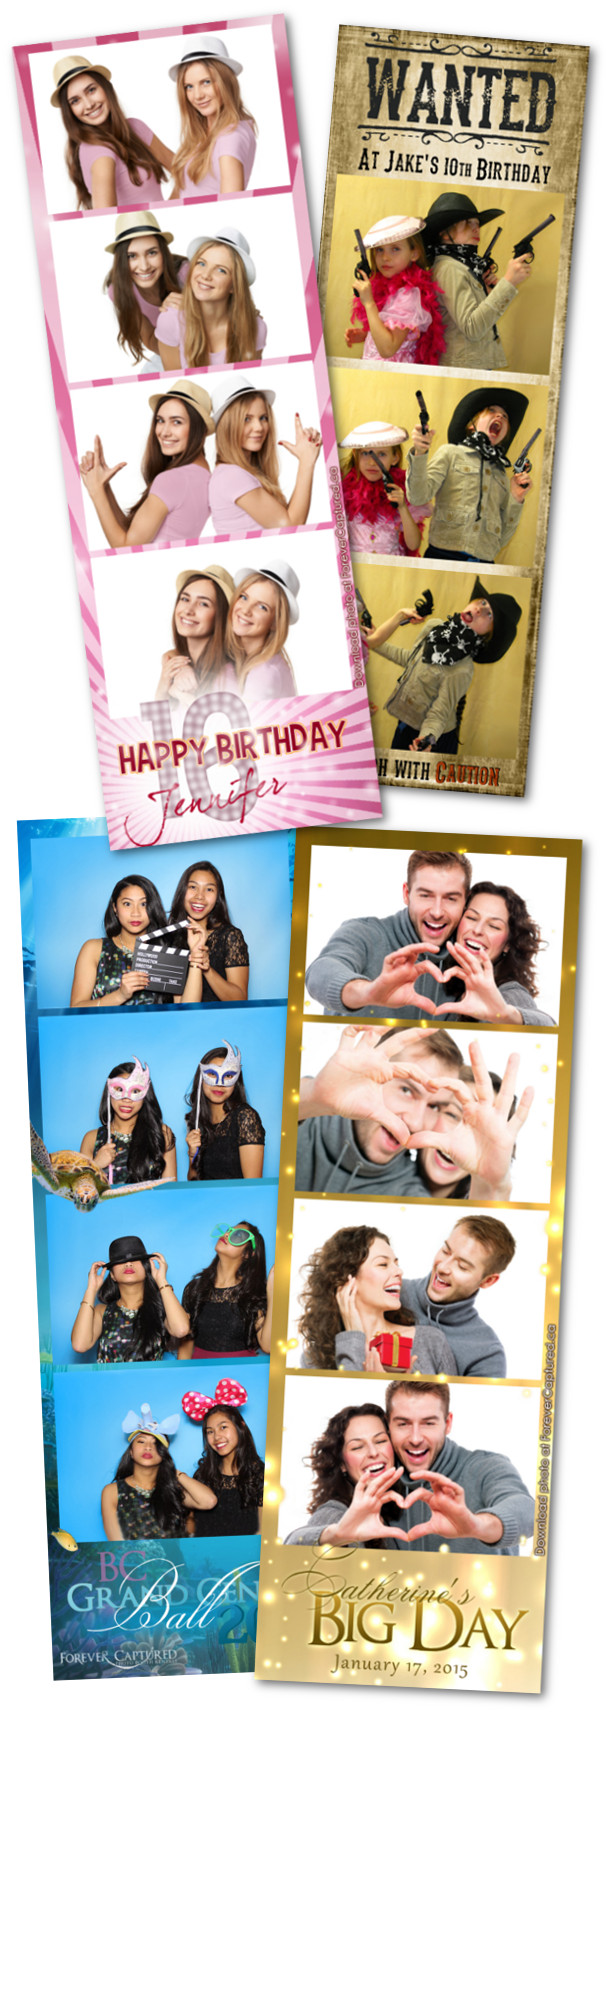 Photobooth hire for parties, weddings, and events in BC.